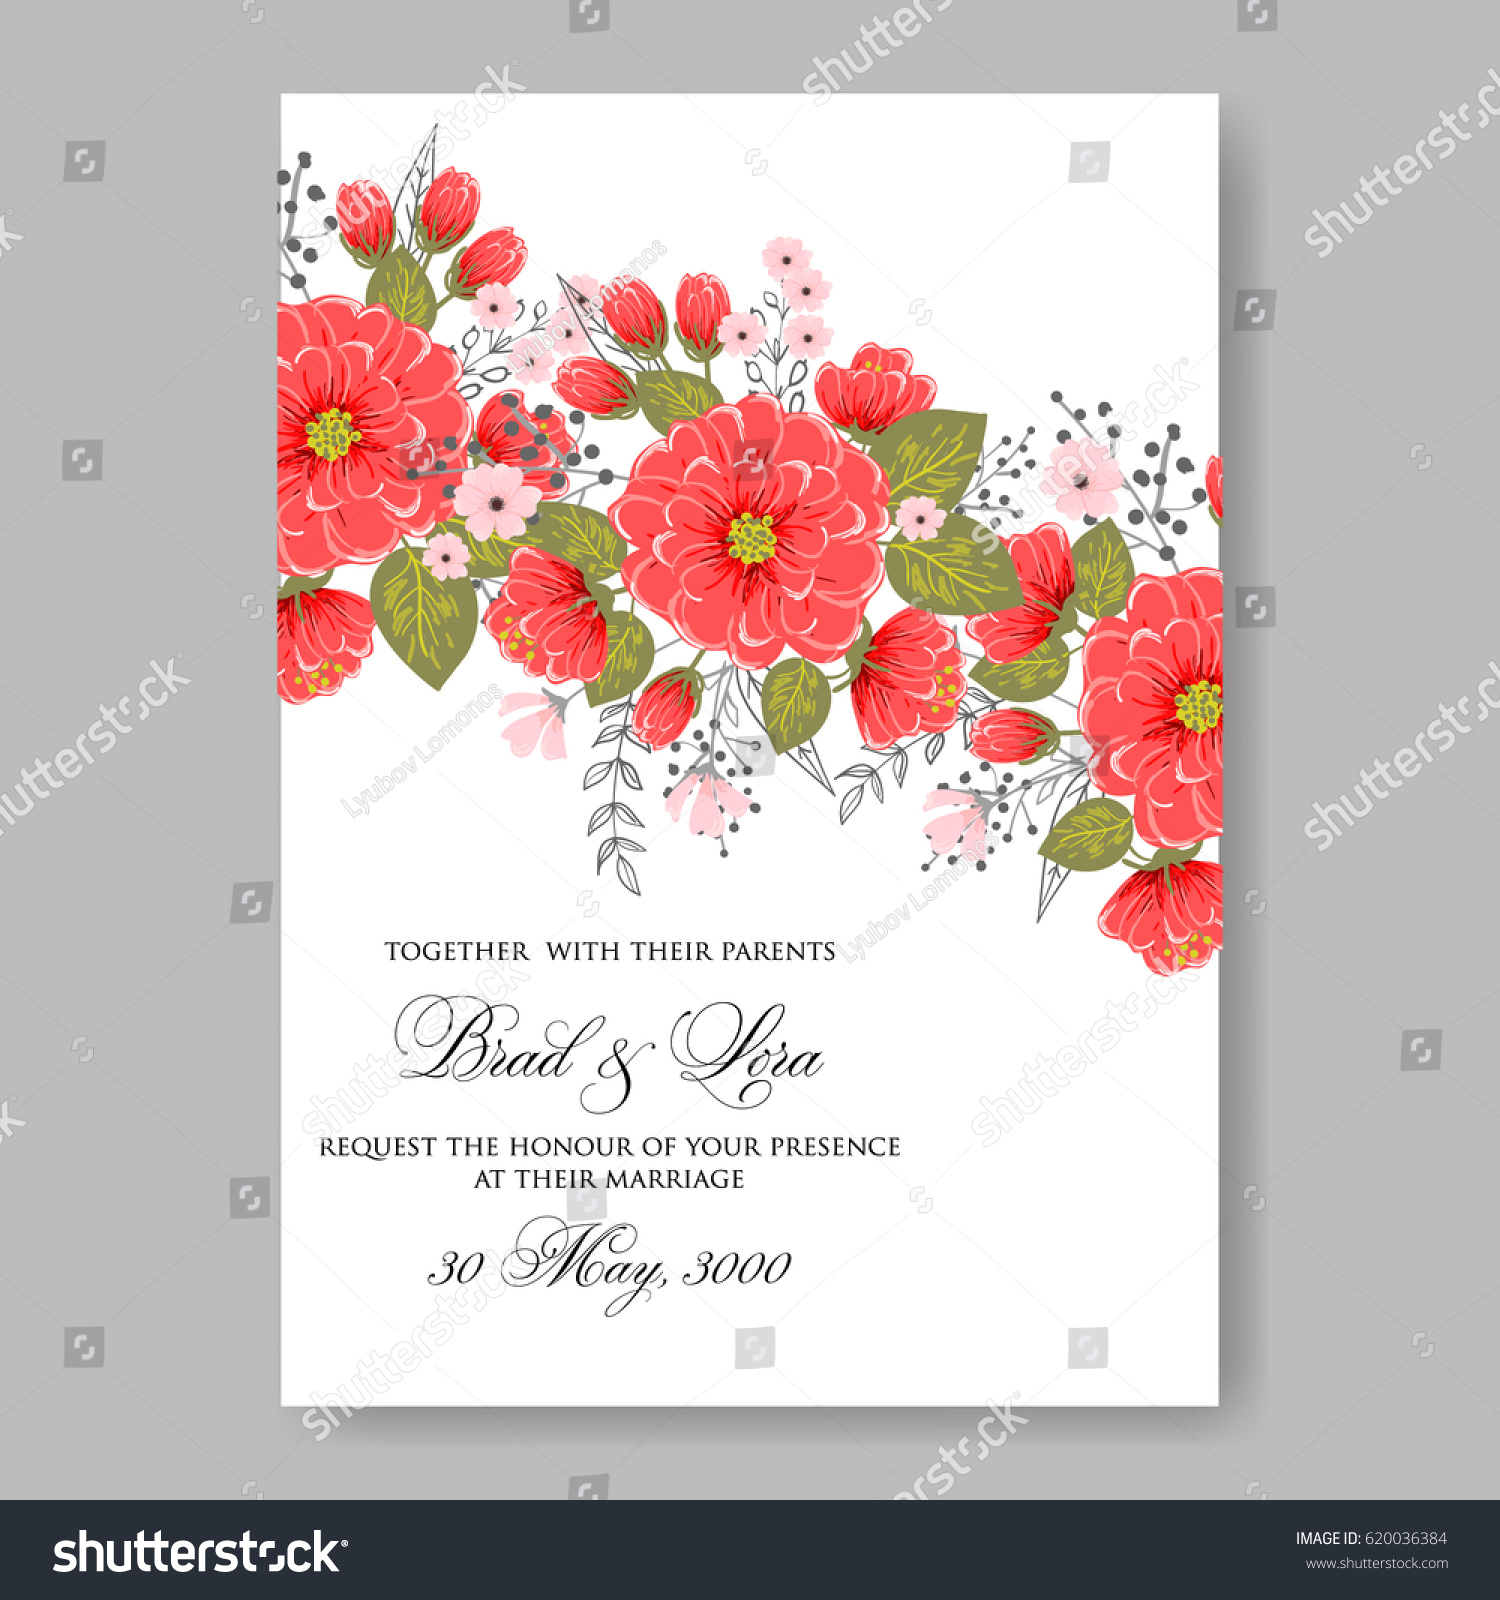 Wedding Invitation Card Template Red Peony Stock Vector HD (Royalty ...